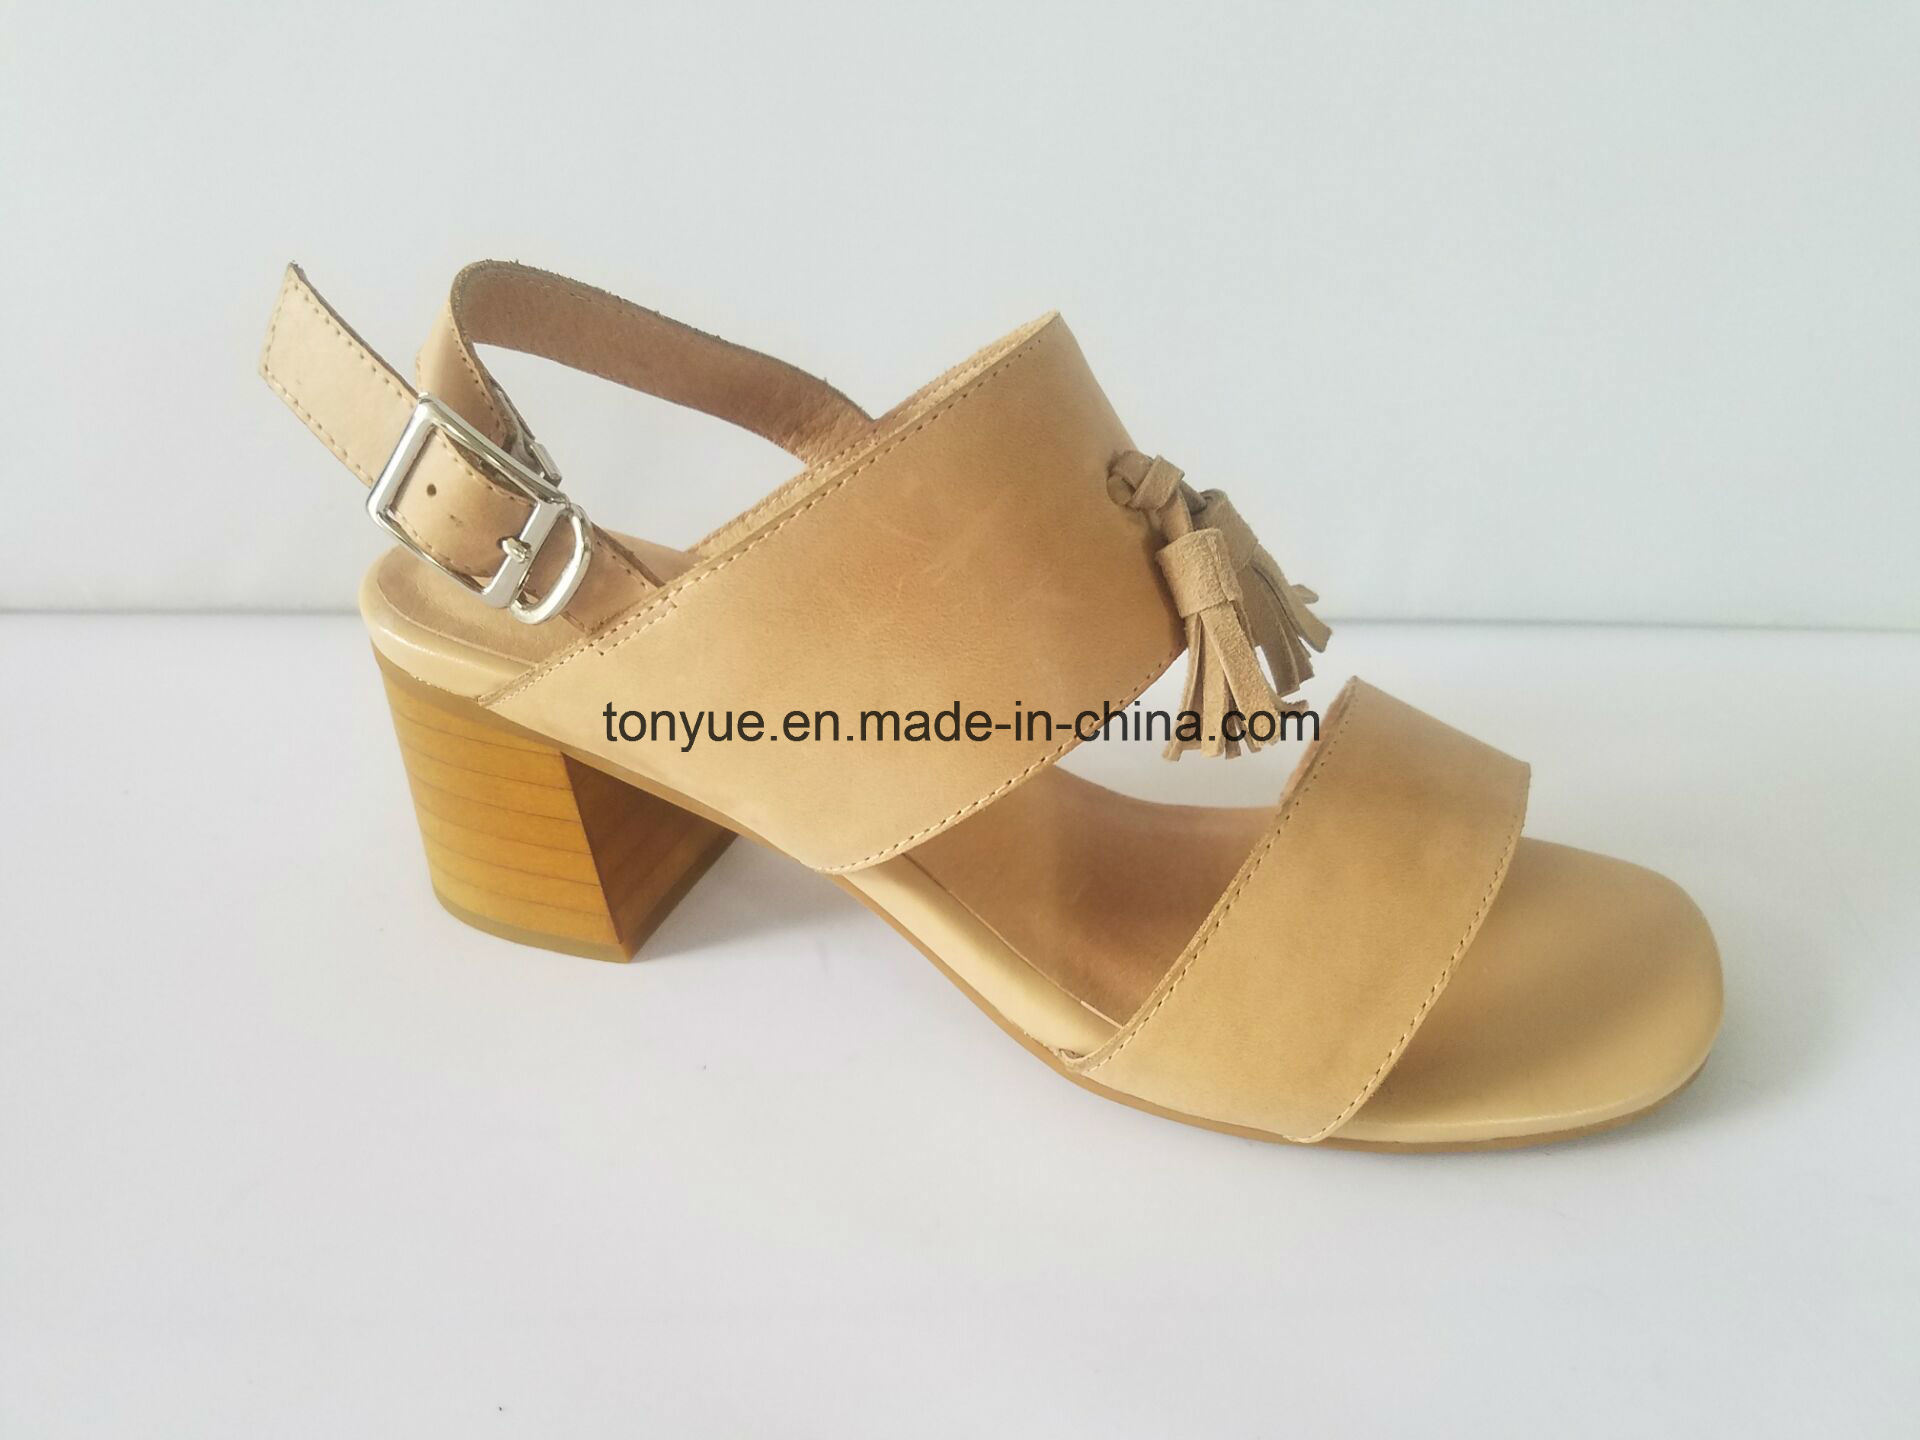 Lady Waxed Leather Square Flat Belt Tassel with Leisure Simple Sandals